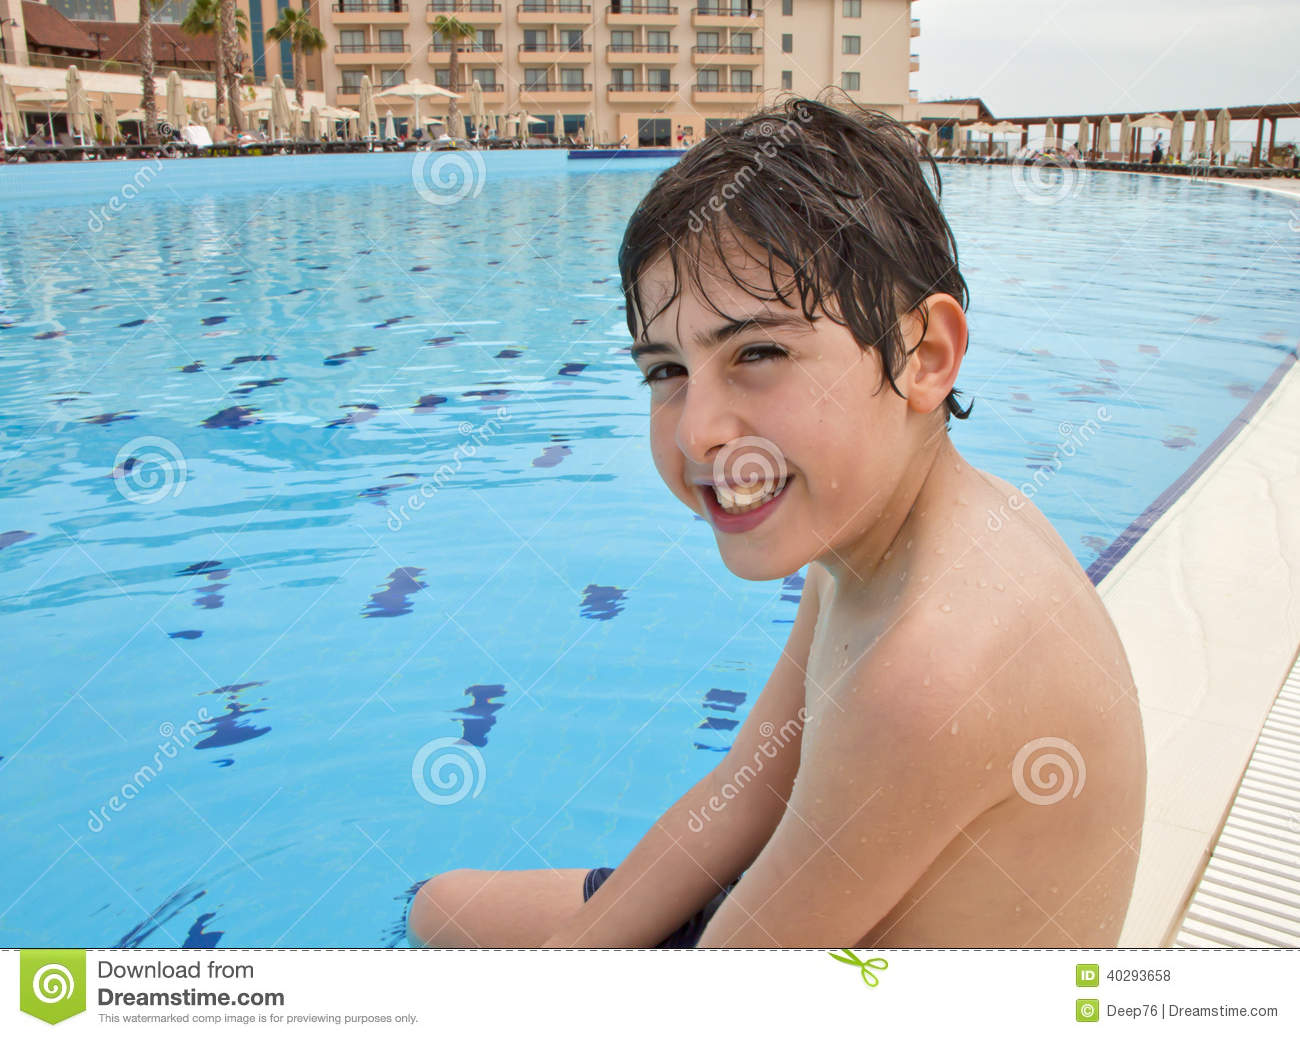 The Boy Is Have Fun In The Swimming Pool Stock Image